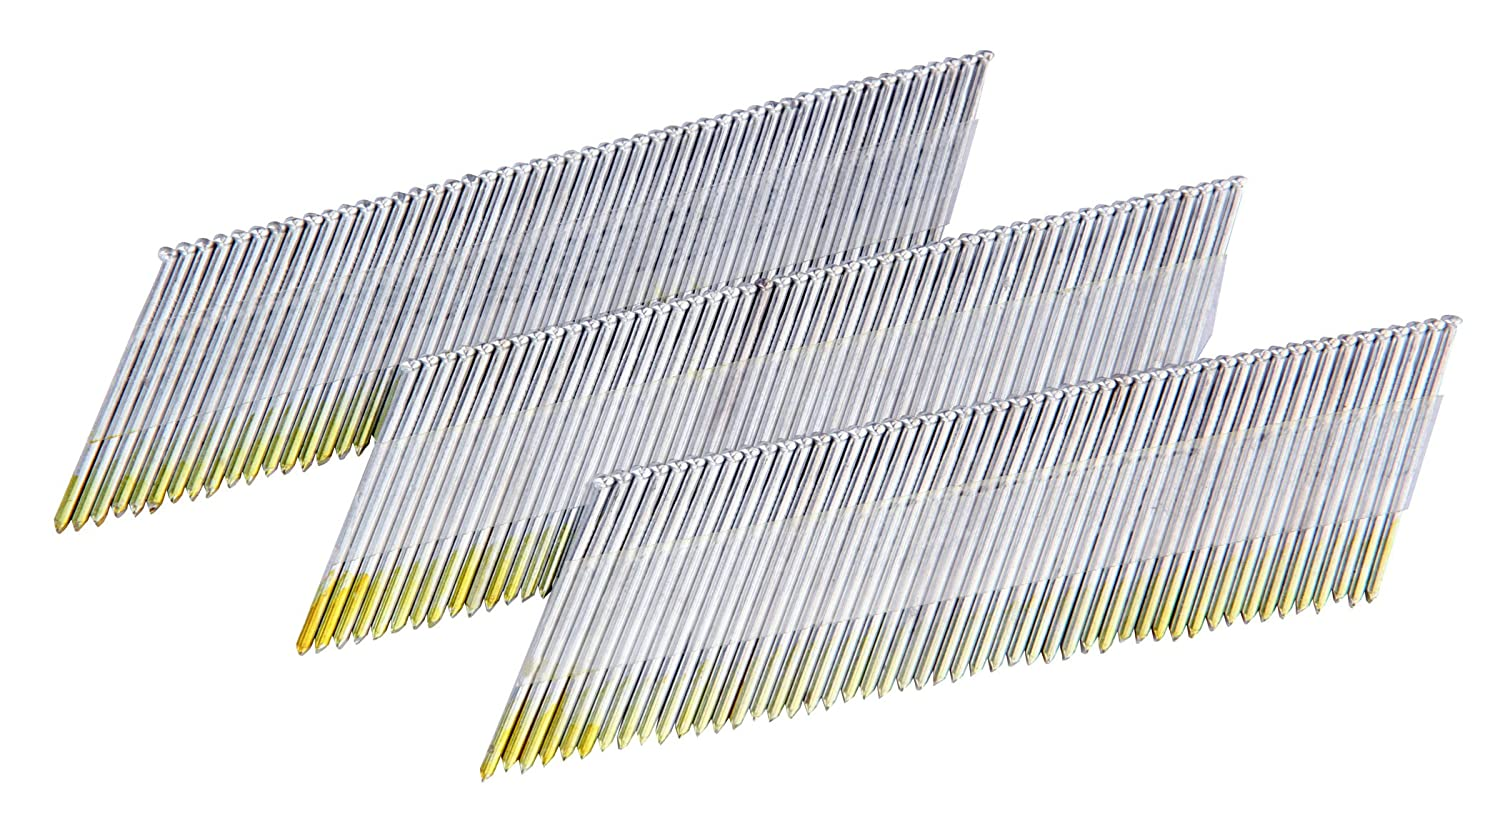 Freeman AF1534-15 1-1/2-Inch by 15 Gauge Angle Nail, 1000 Per Box Prime Global Products